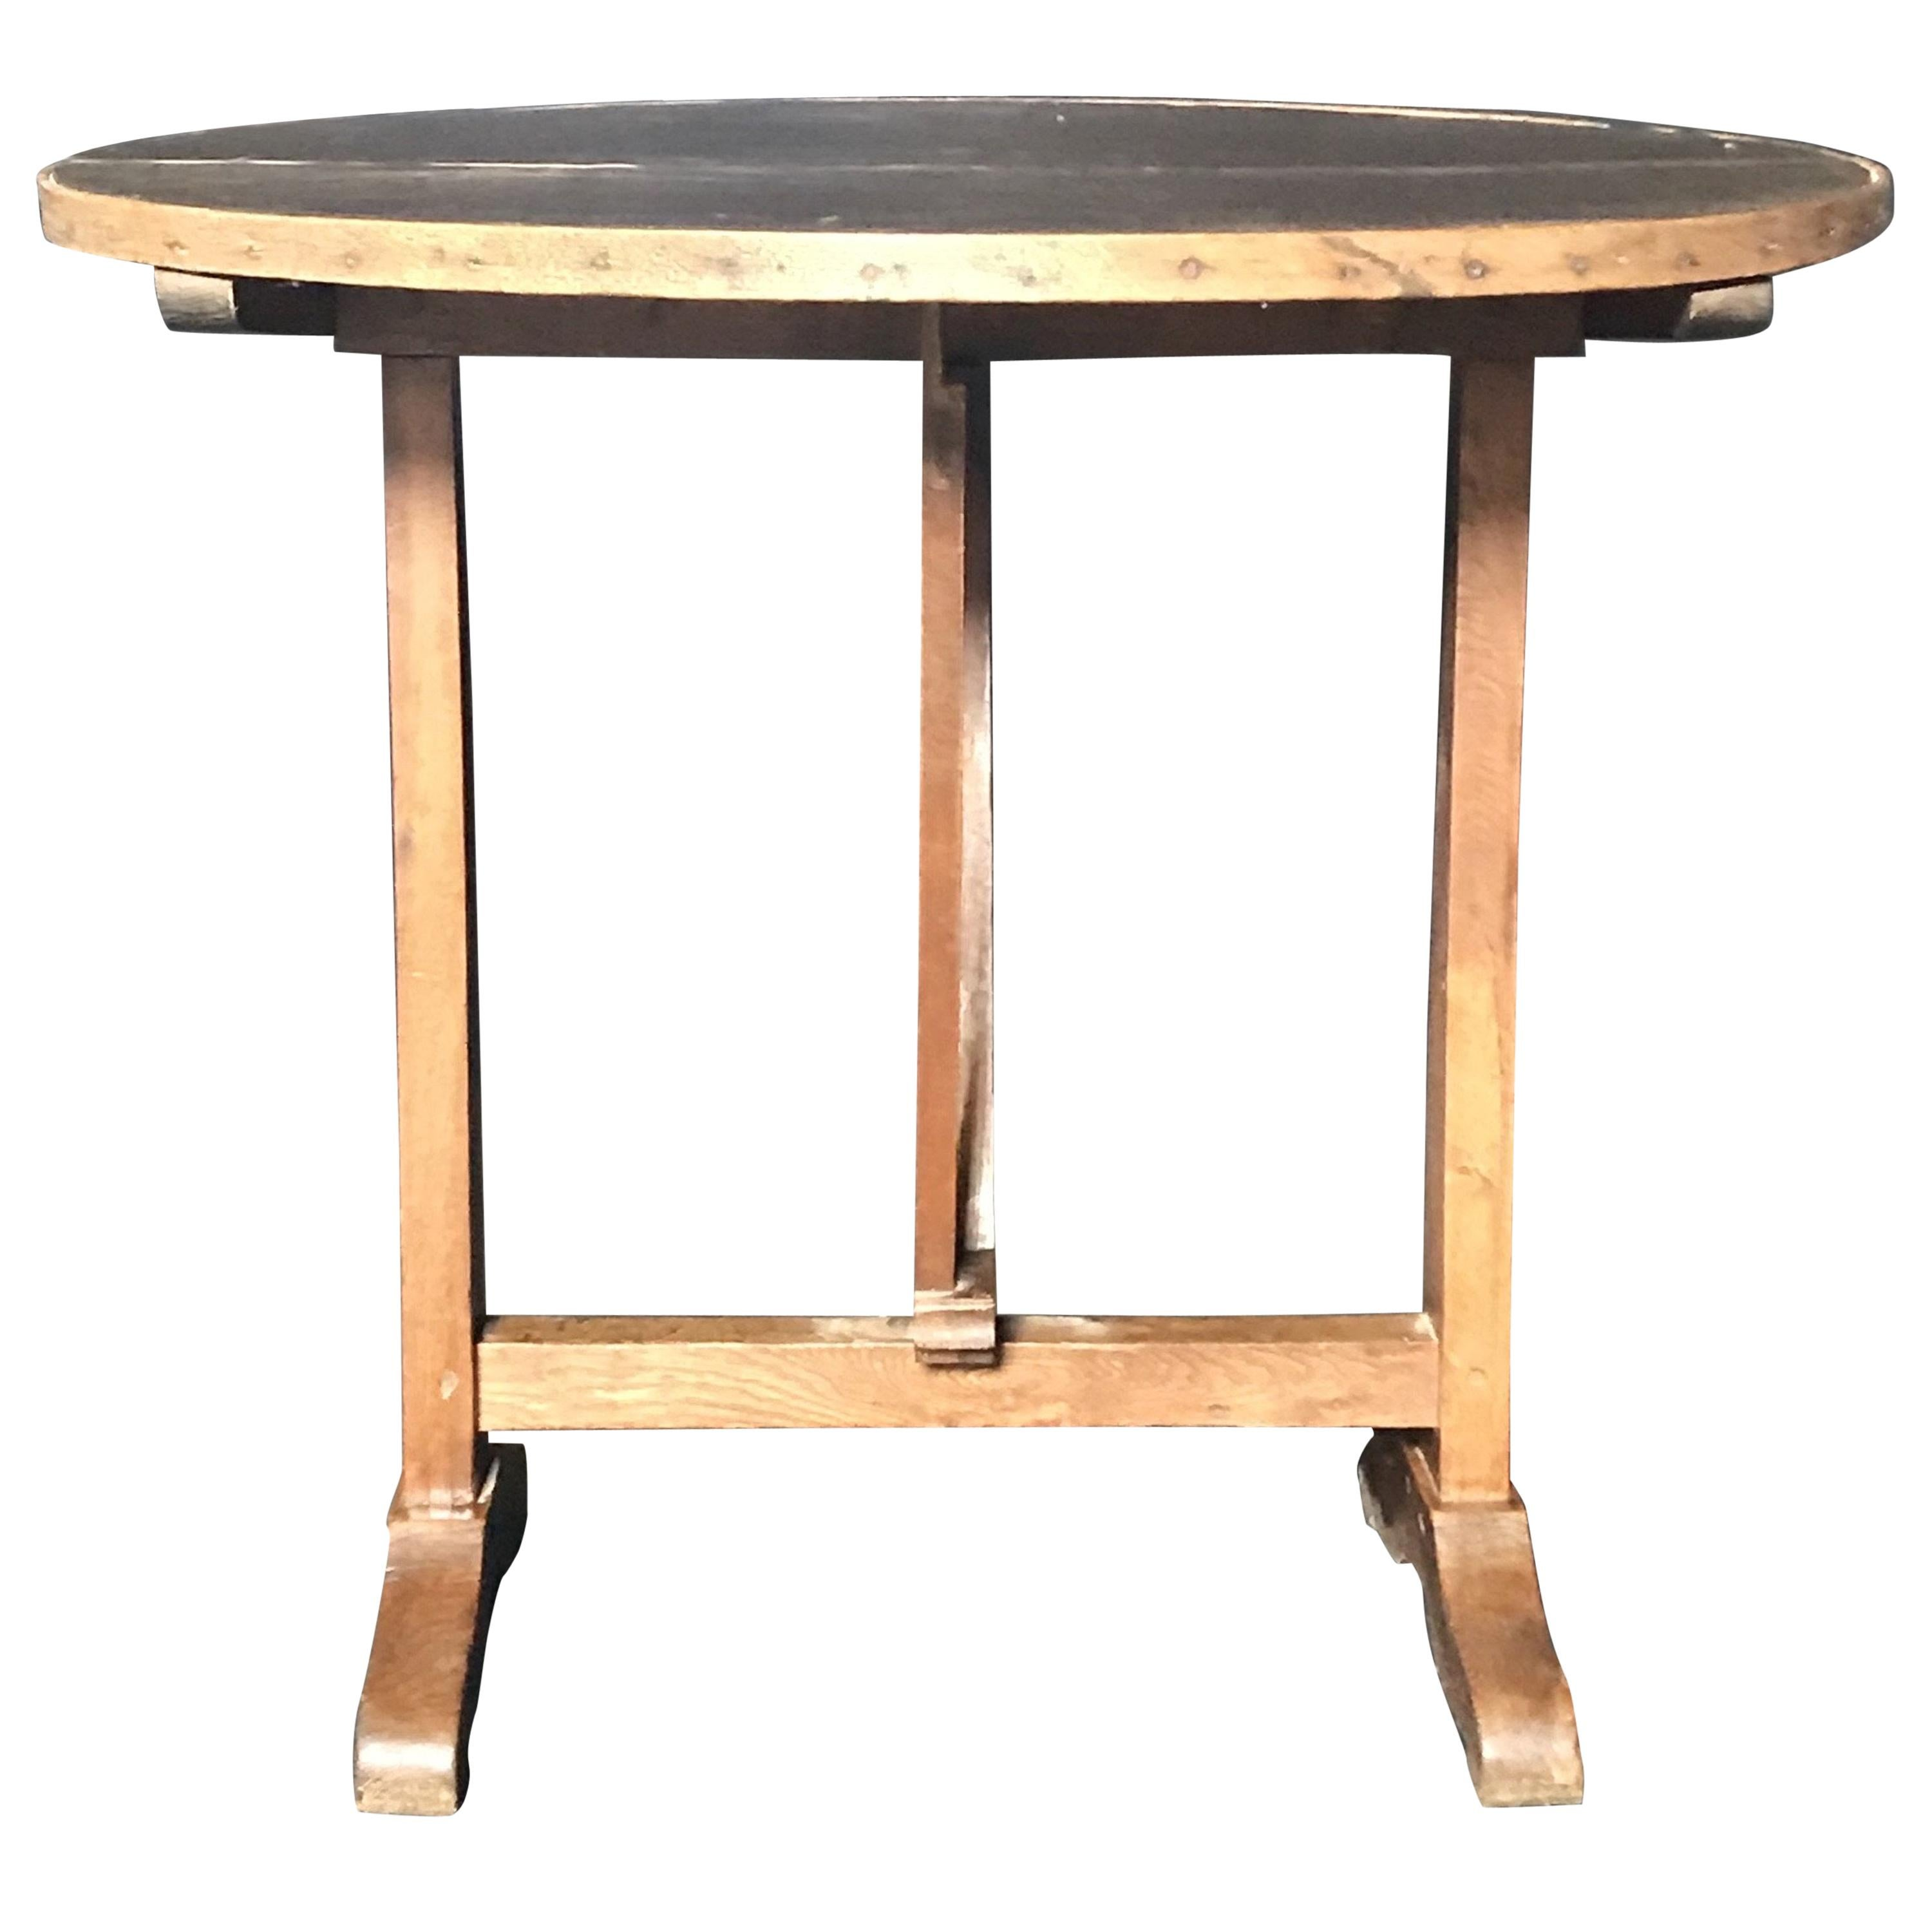 19th Century Antique French Leather Top Wine Tasting and Dining Table